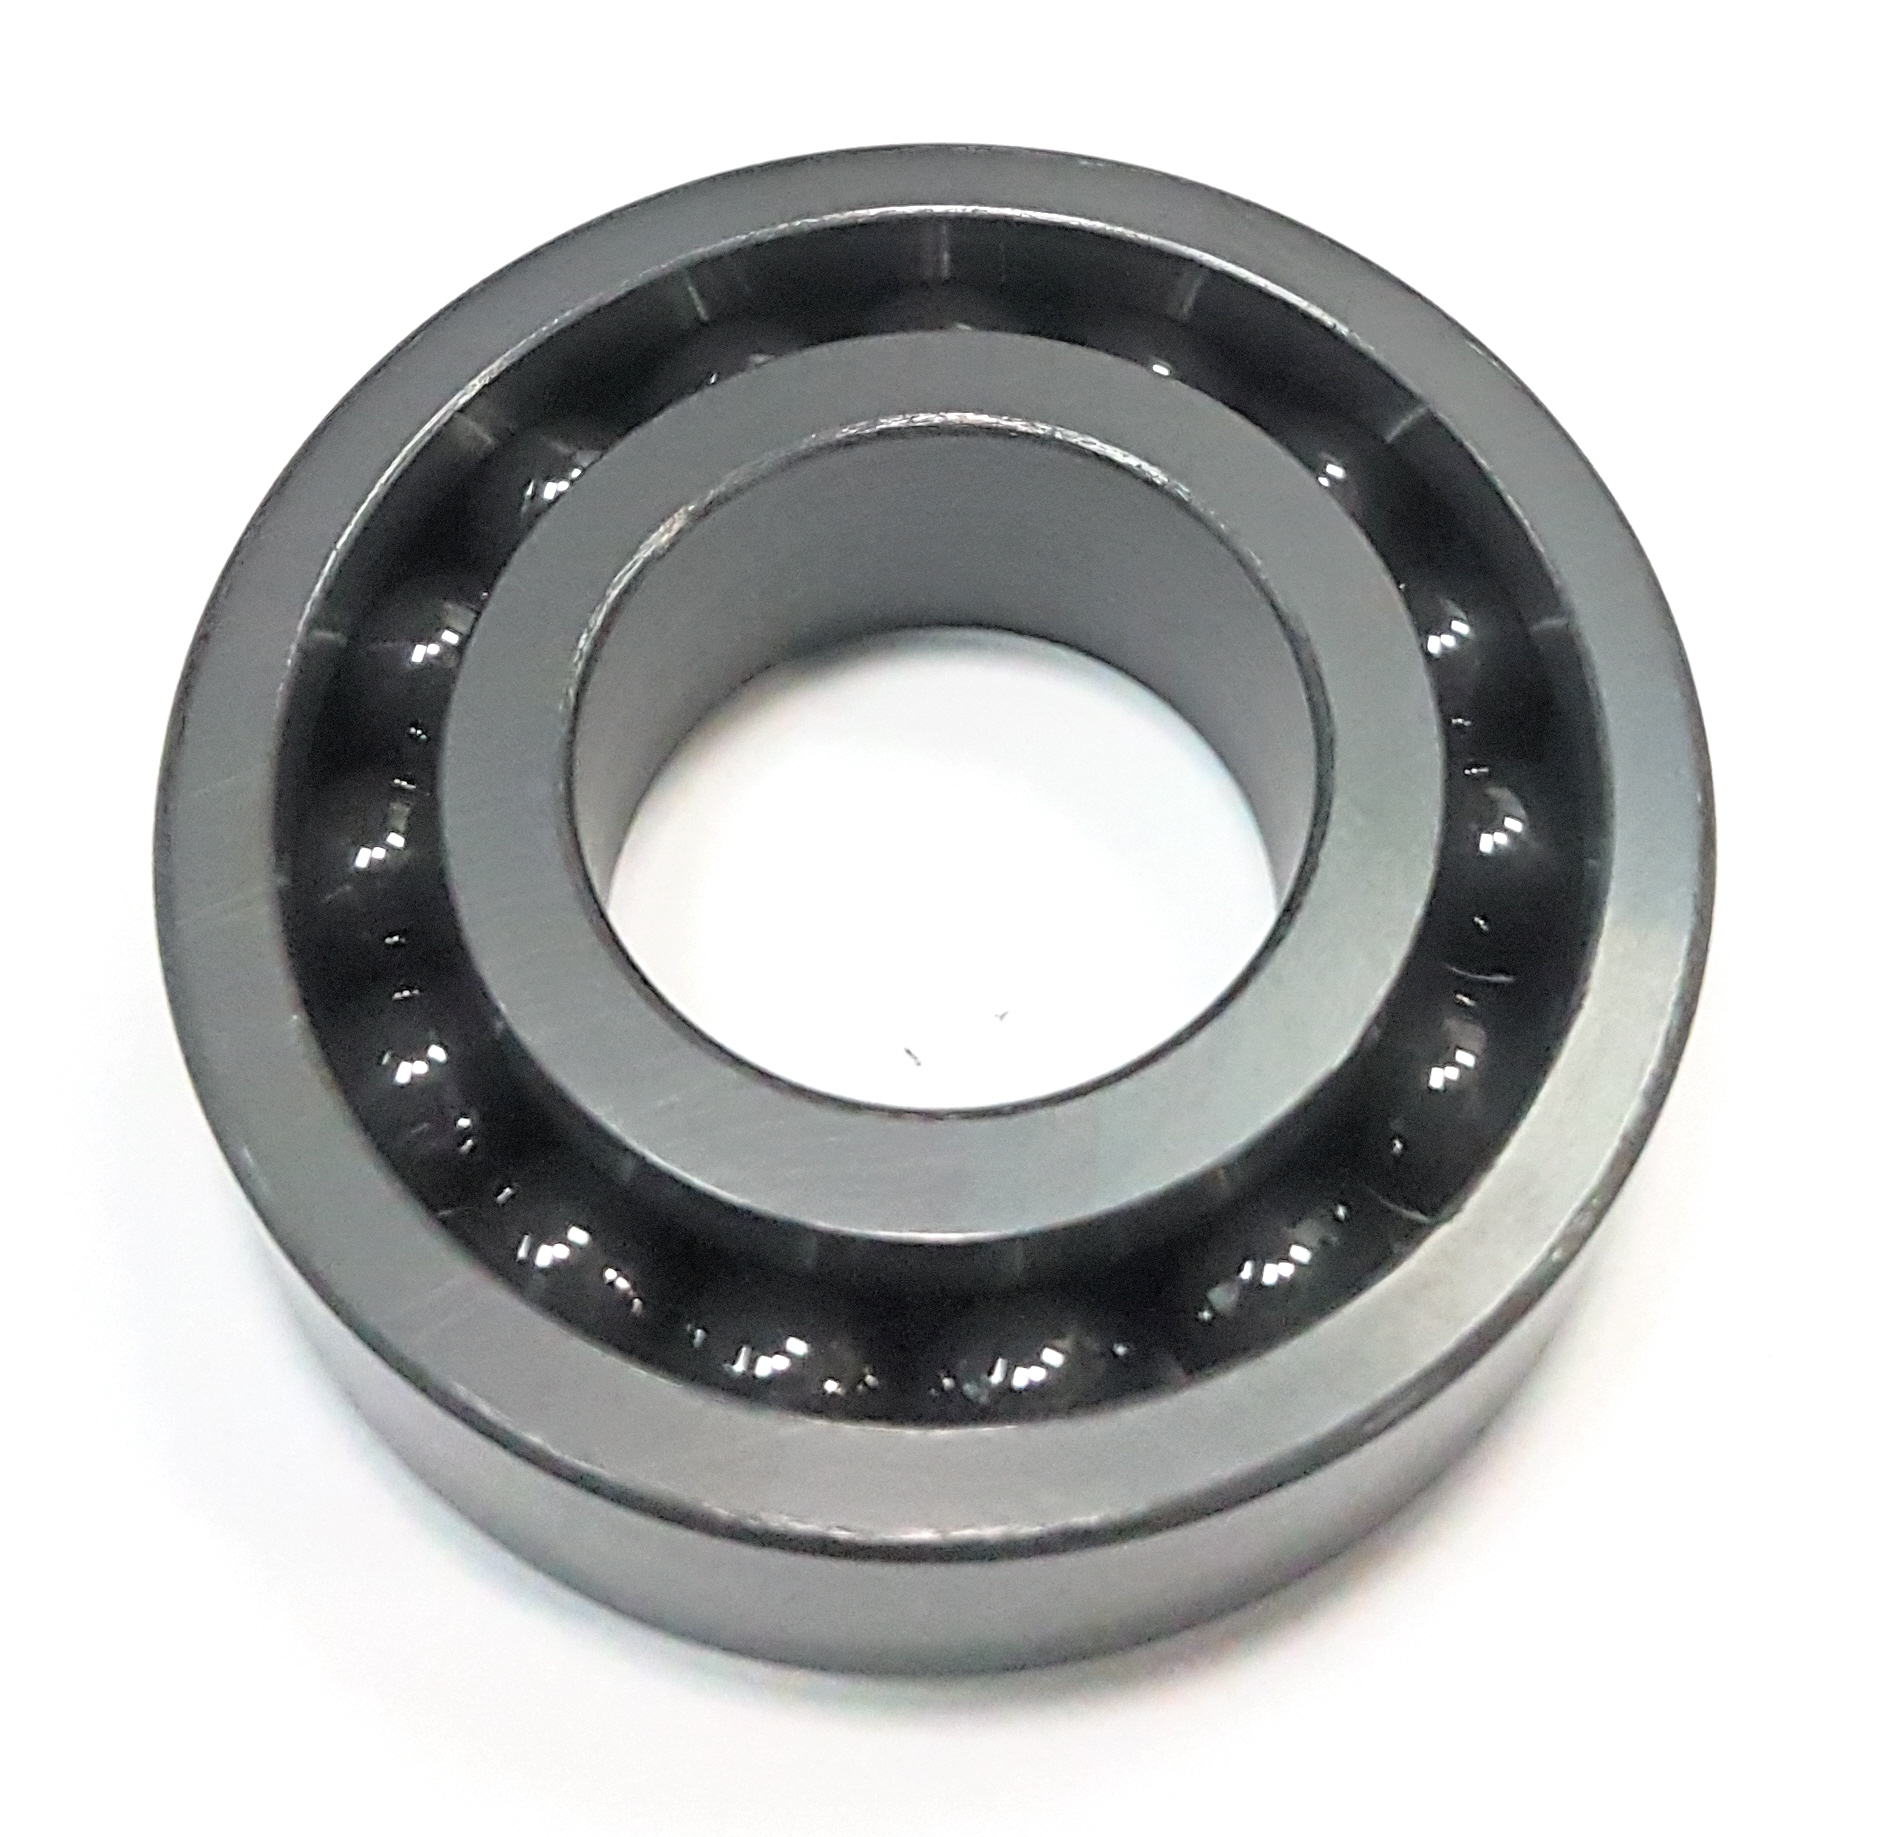 SMB Bearings launch ceramic bearings for extreme applications